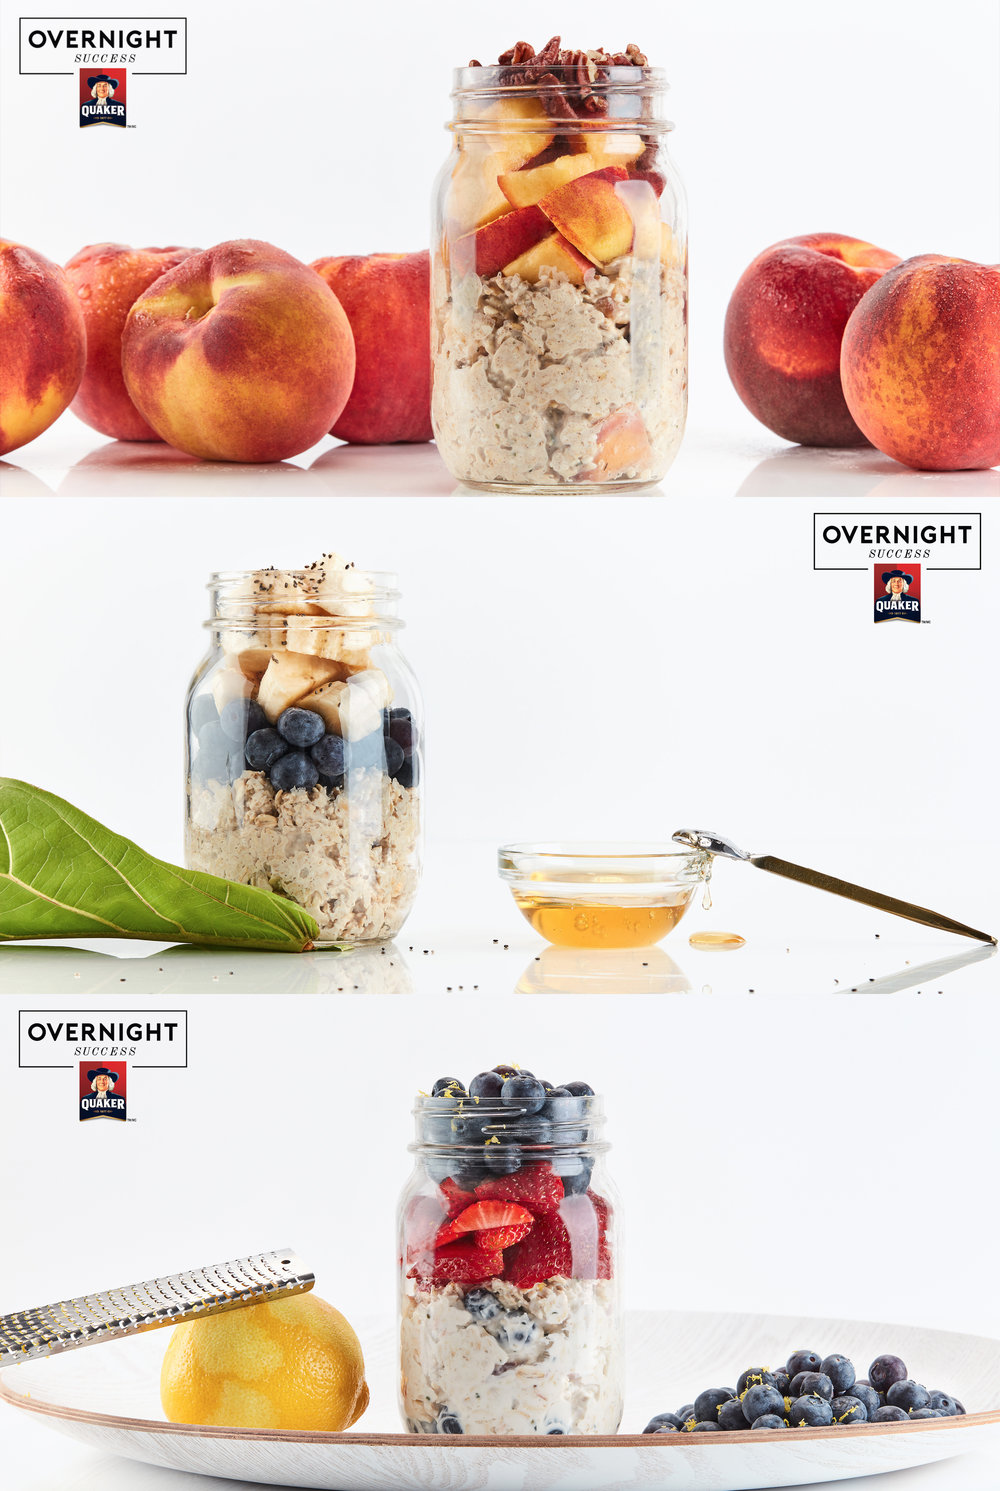 Raquel-Waldman-Quaker-Overnight-Oats-Graphic-Designer-Photography-5-2000x994.jpg